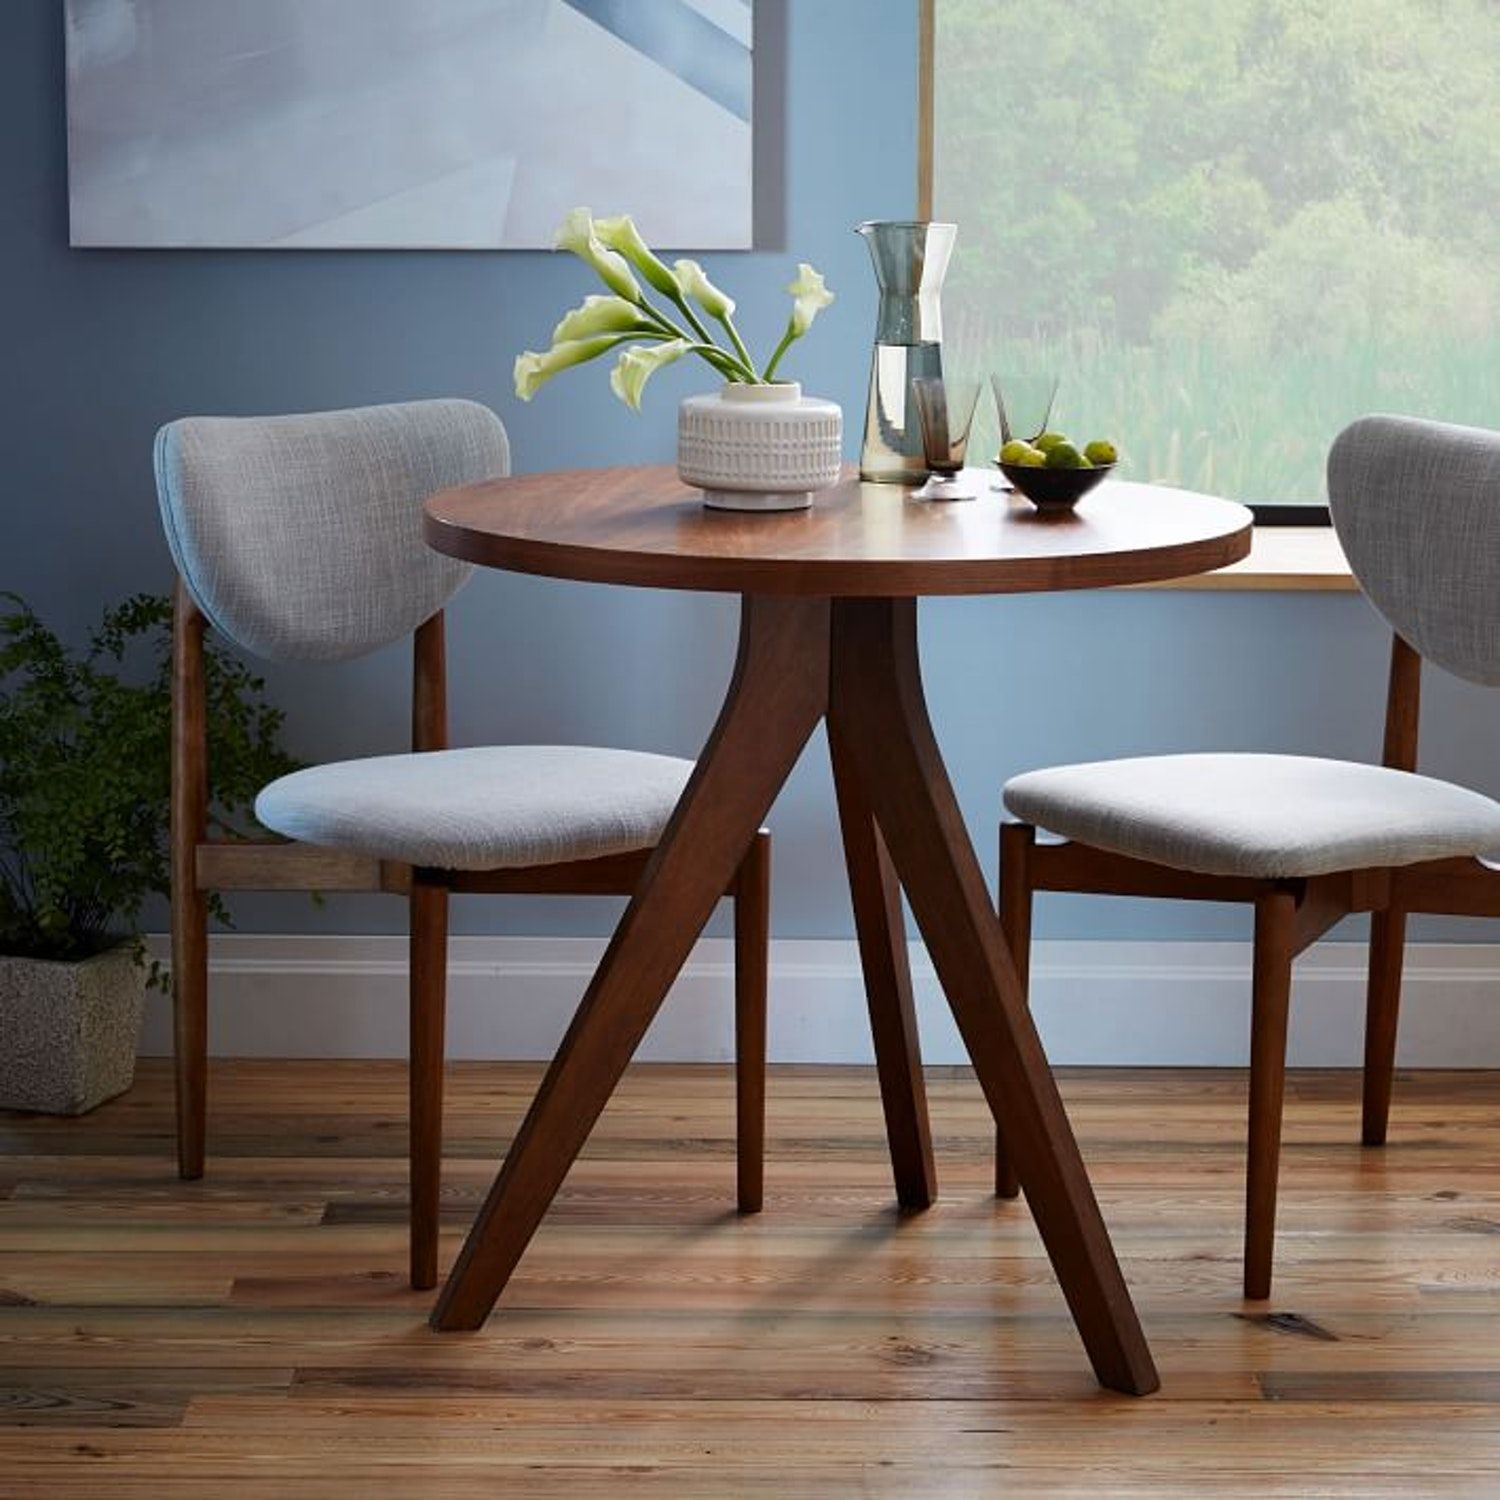 The Best Dining Tables For Your Small Space Small Kitchen Tables Dining Room Small Round Dining Table